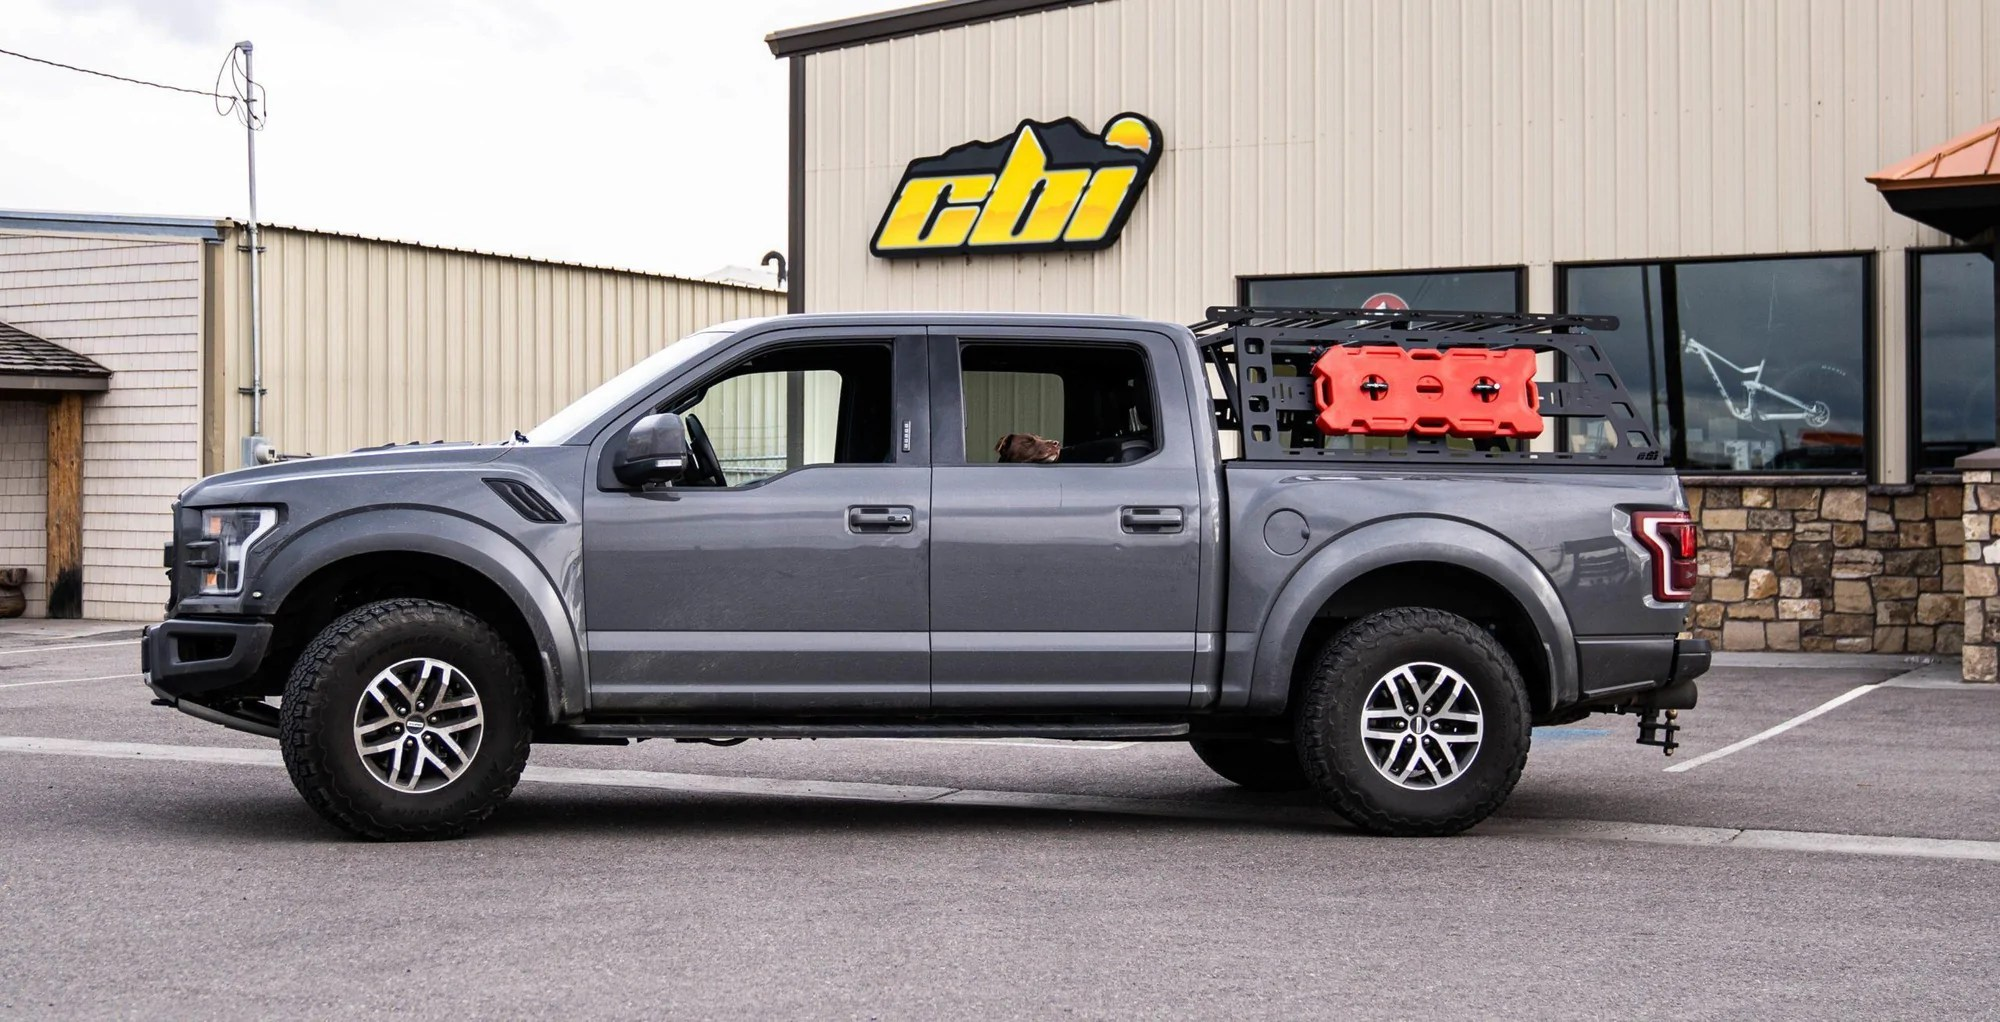 cbi offroad cab height bed rack ford raptor 2017 2020